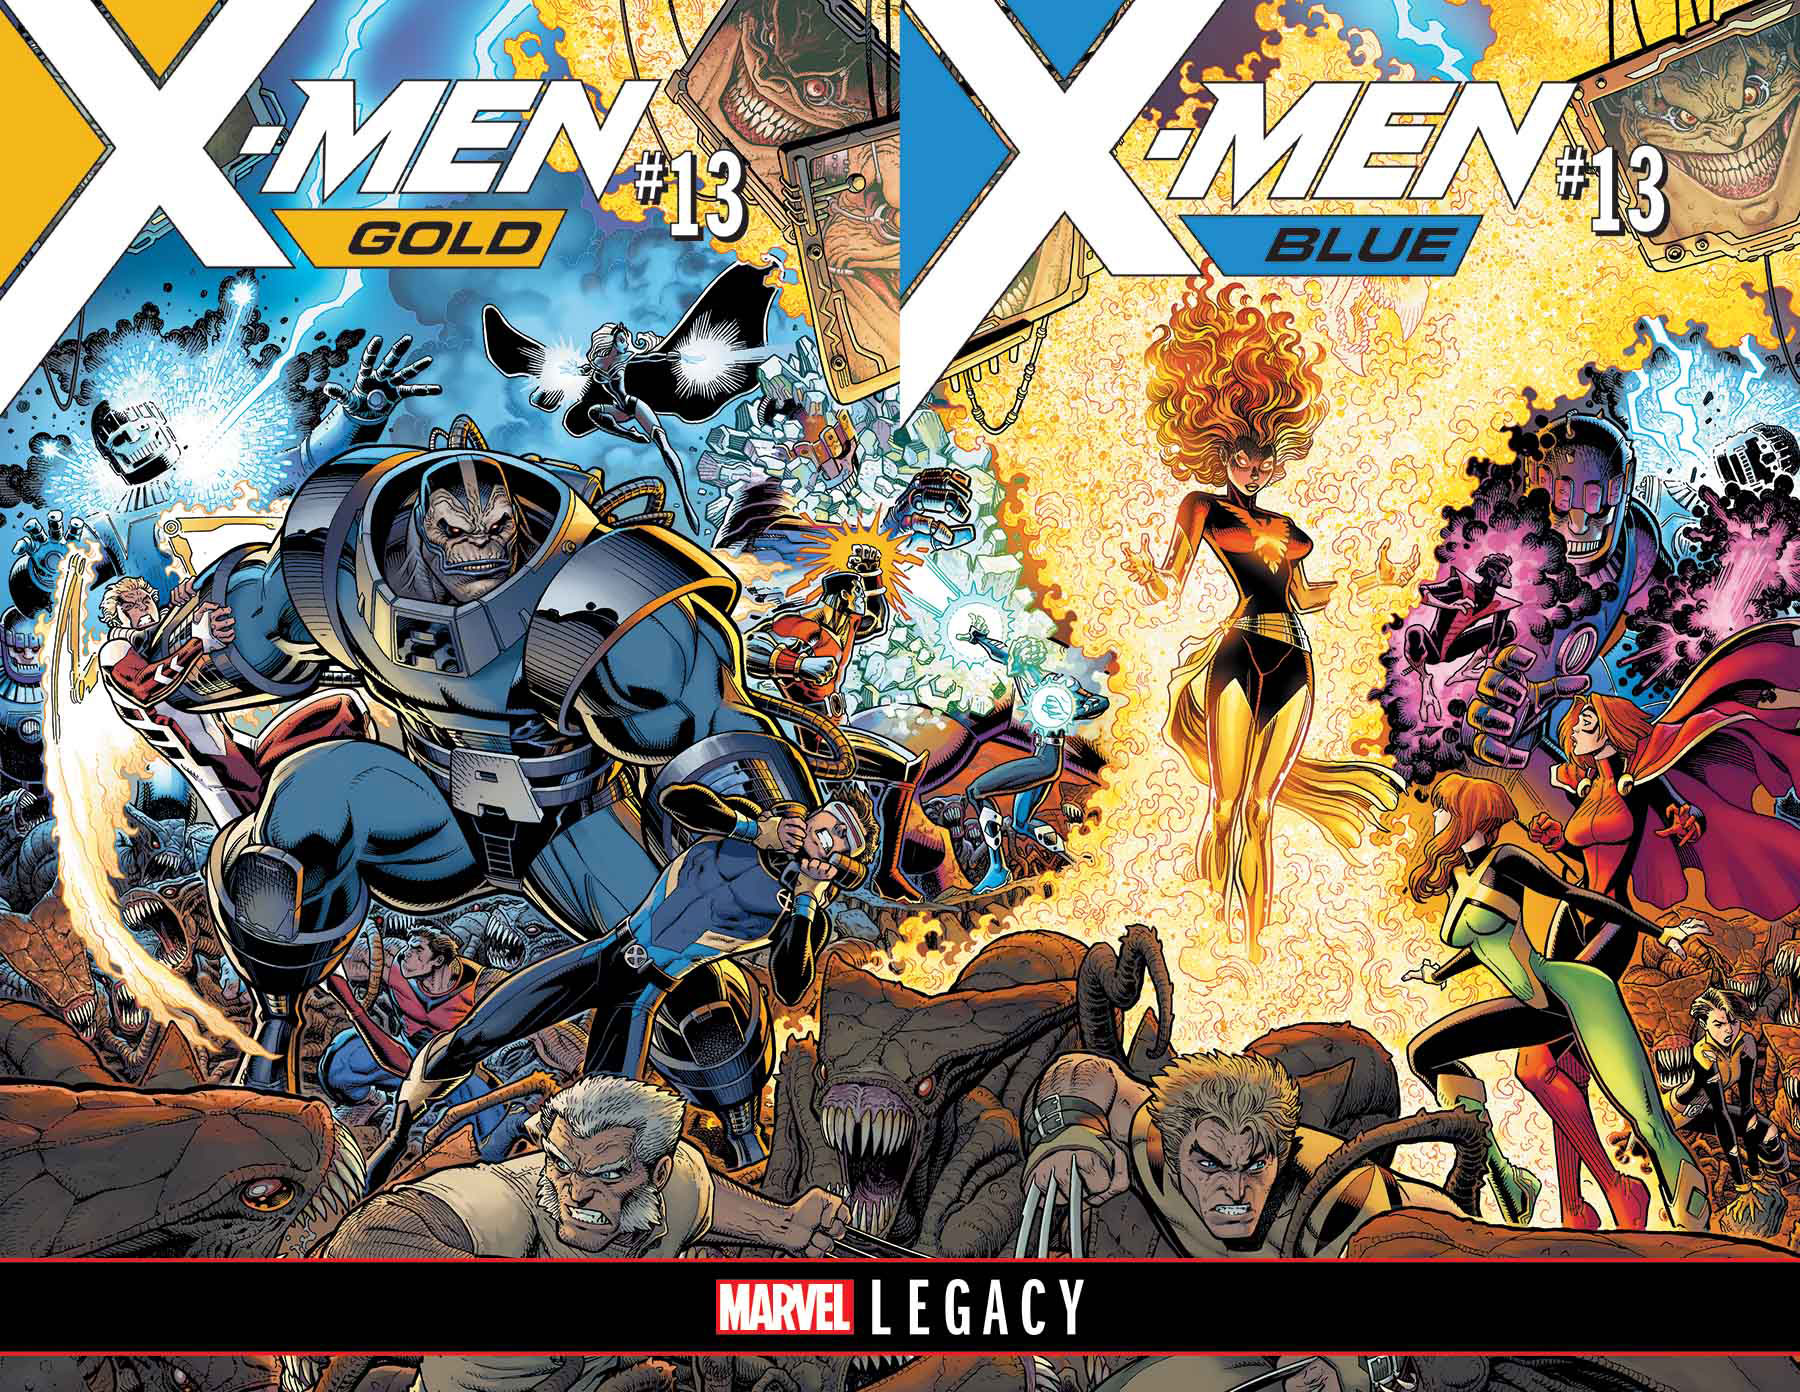 X-MEN BLUE AND GOLD INTERLOCKING COVERS